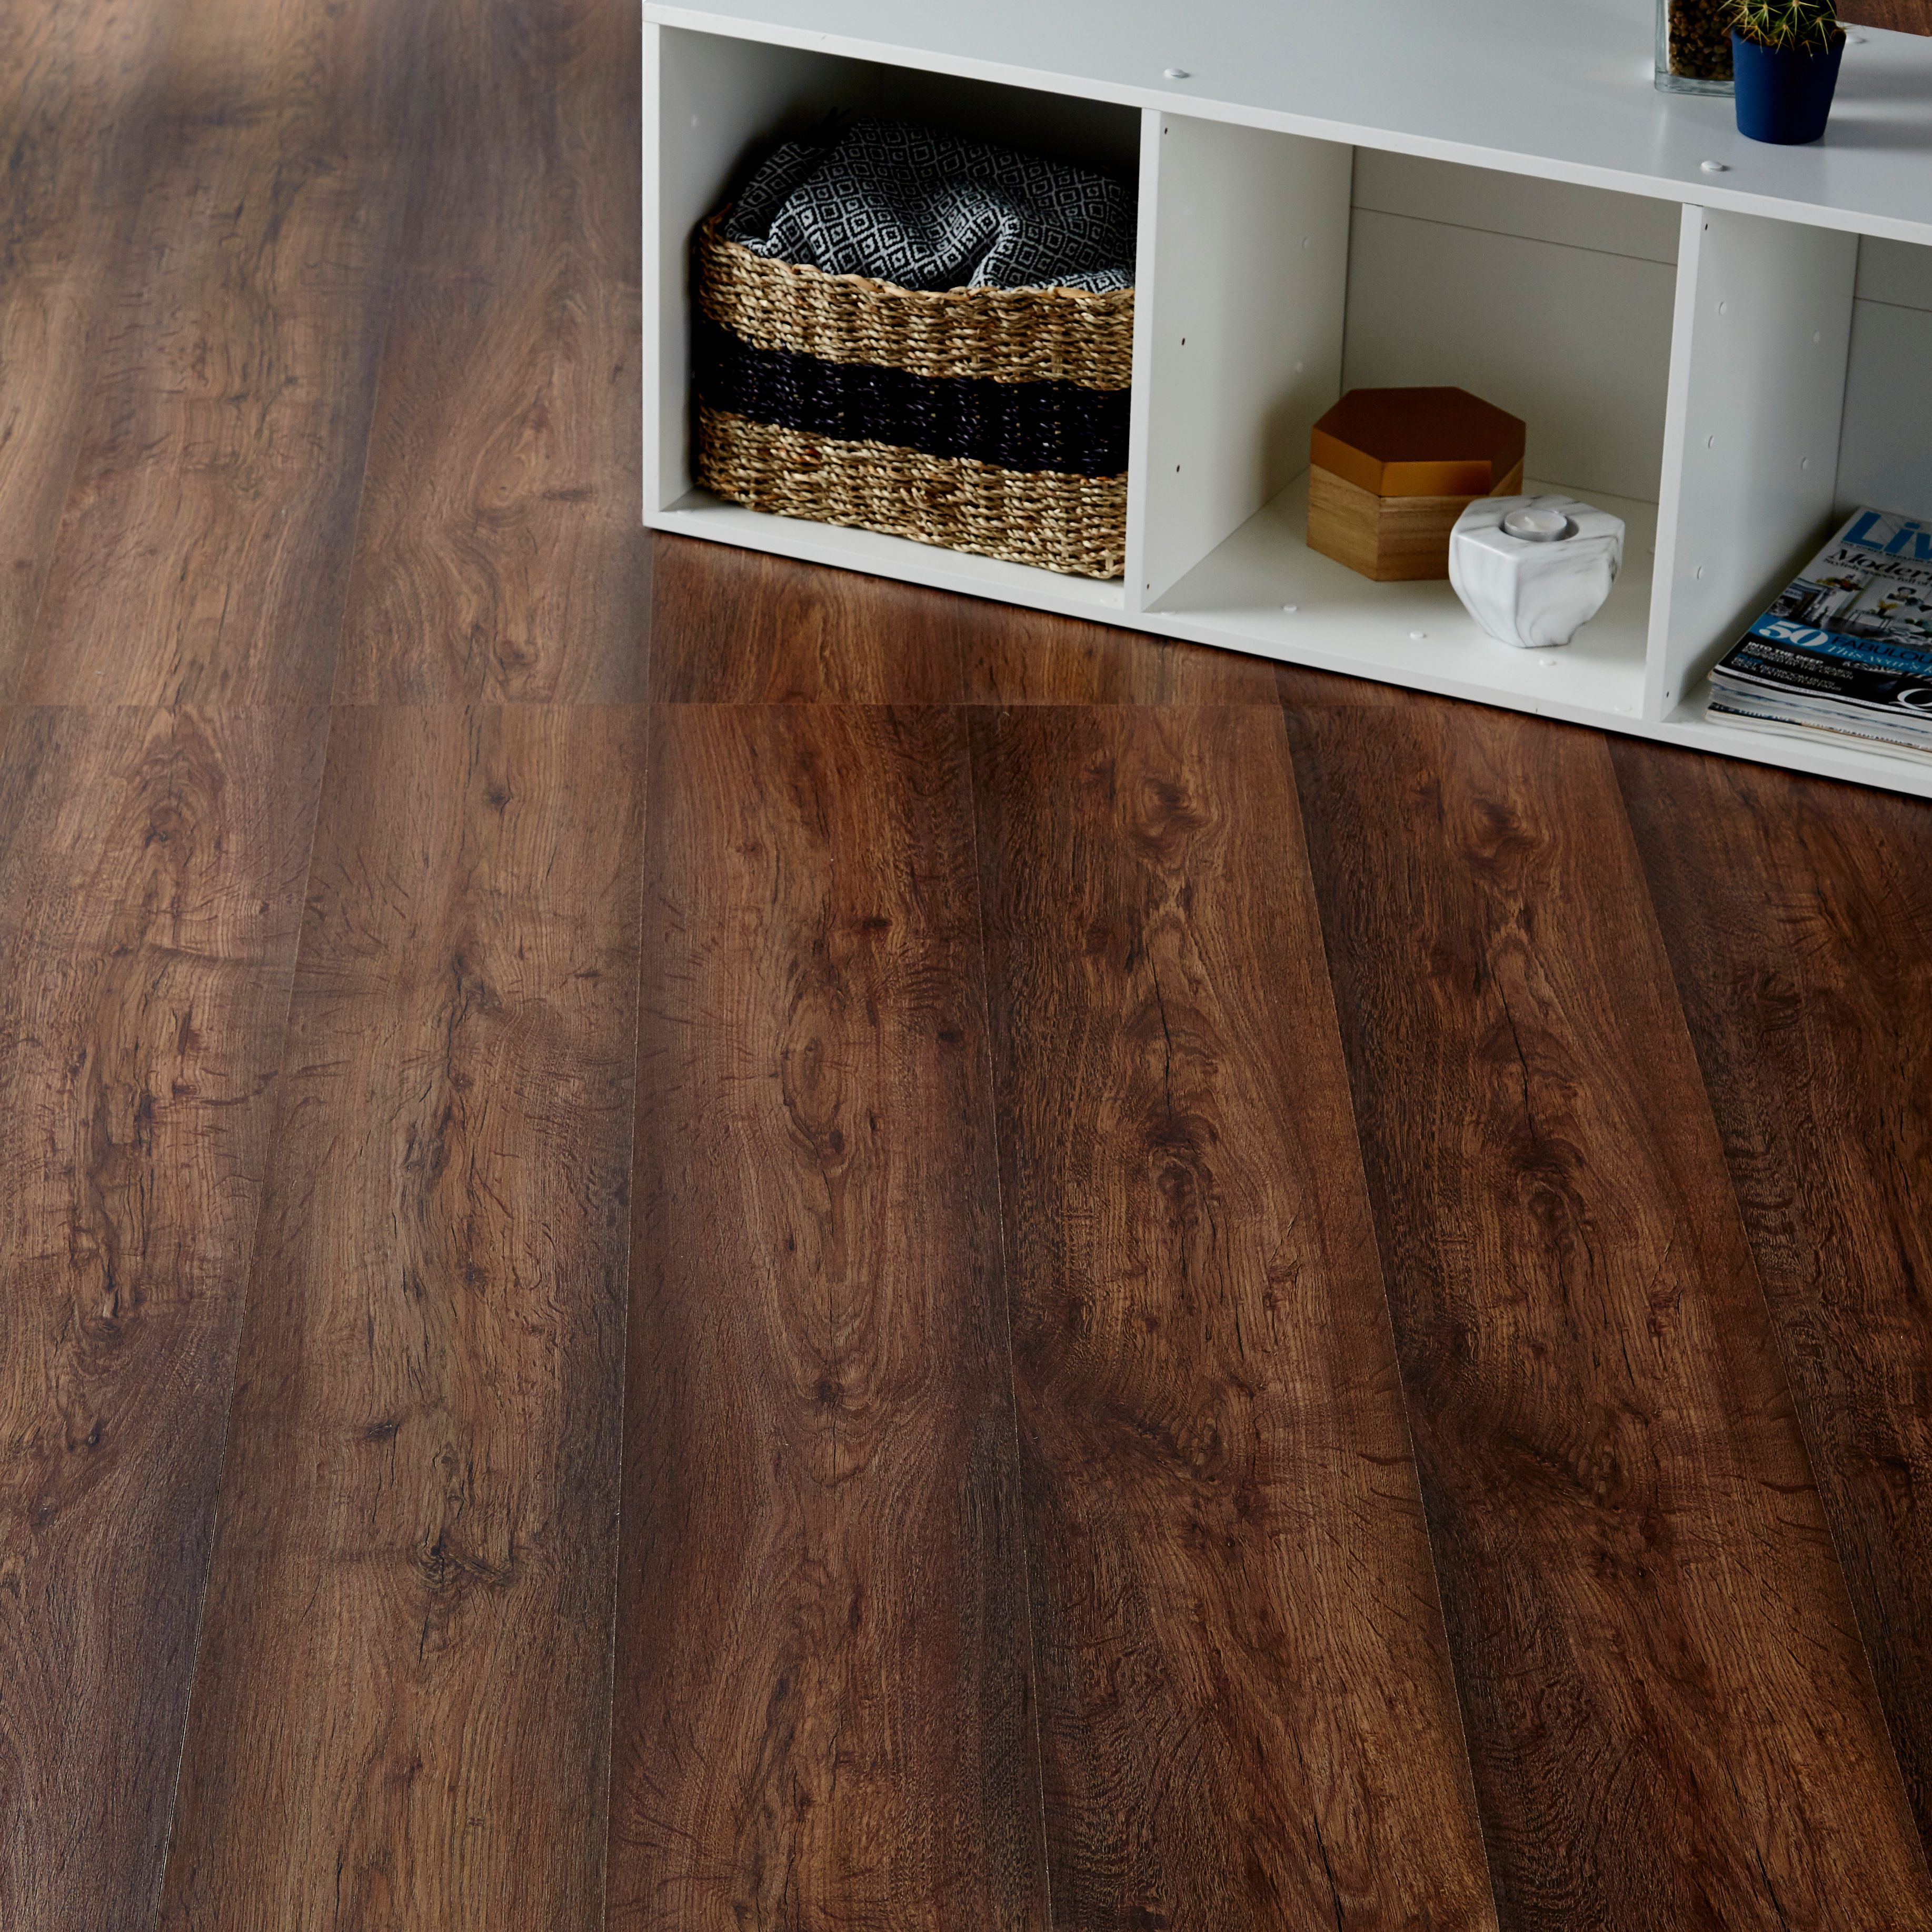 Tamworth Dark Oak Effect Laminate Flooring 2 467 M 178 Pack